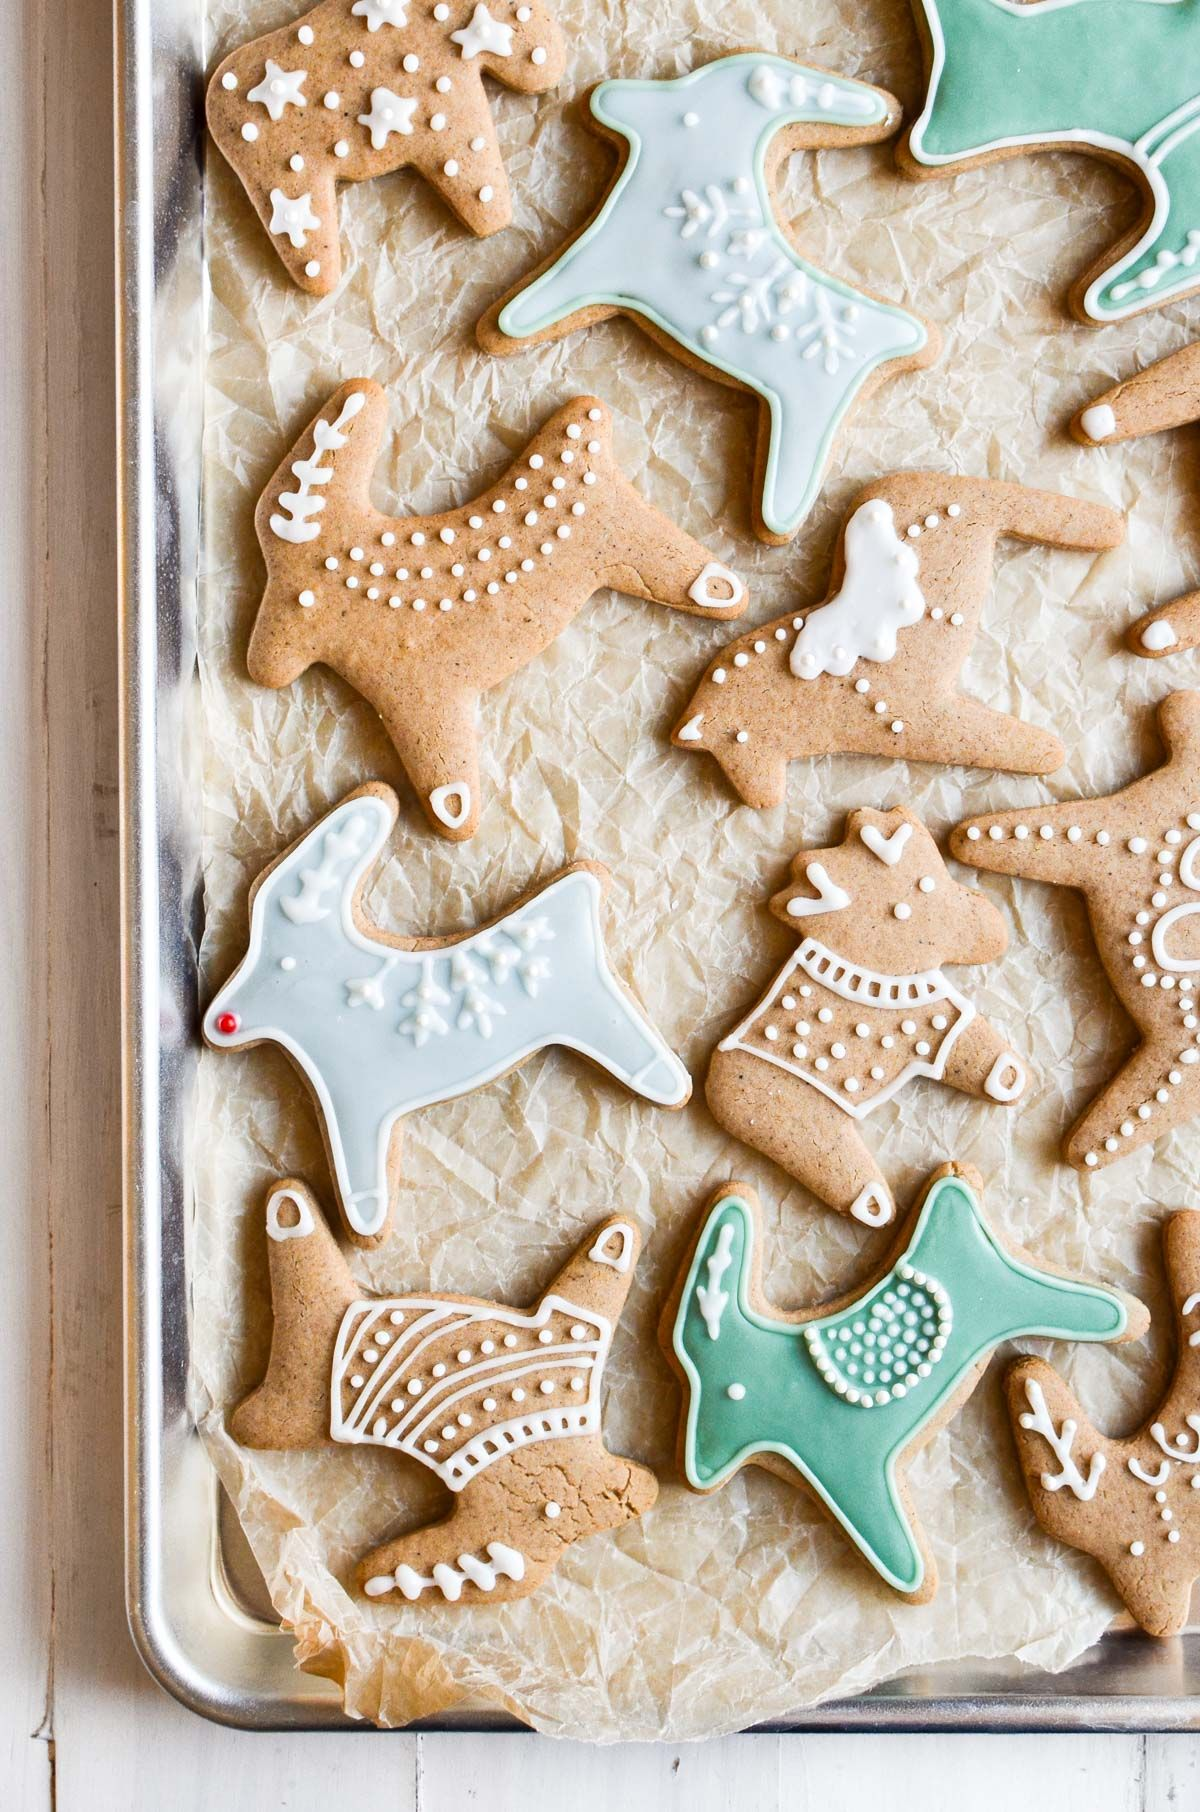 My Traditional Swedish Pepparkakor Recipe Is A Crisp Gingerbread Cookie That S A Scandinavian Chris Swedish Pepparkakor Recipe Pepparkakor Recipe Plain Cookies